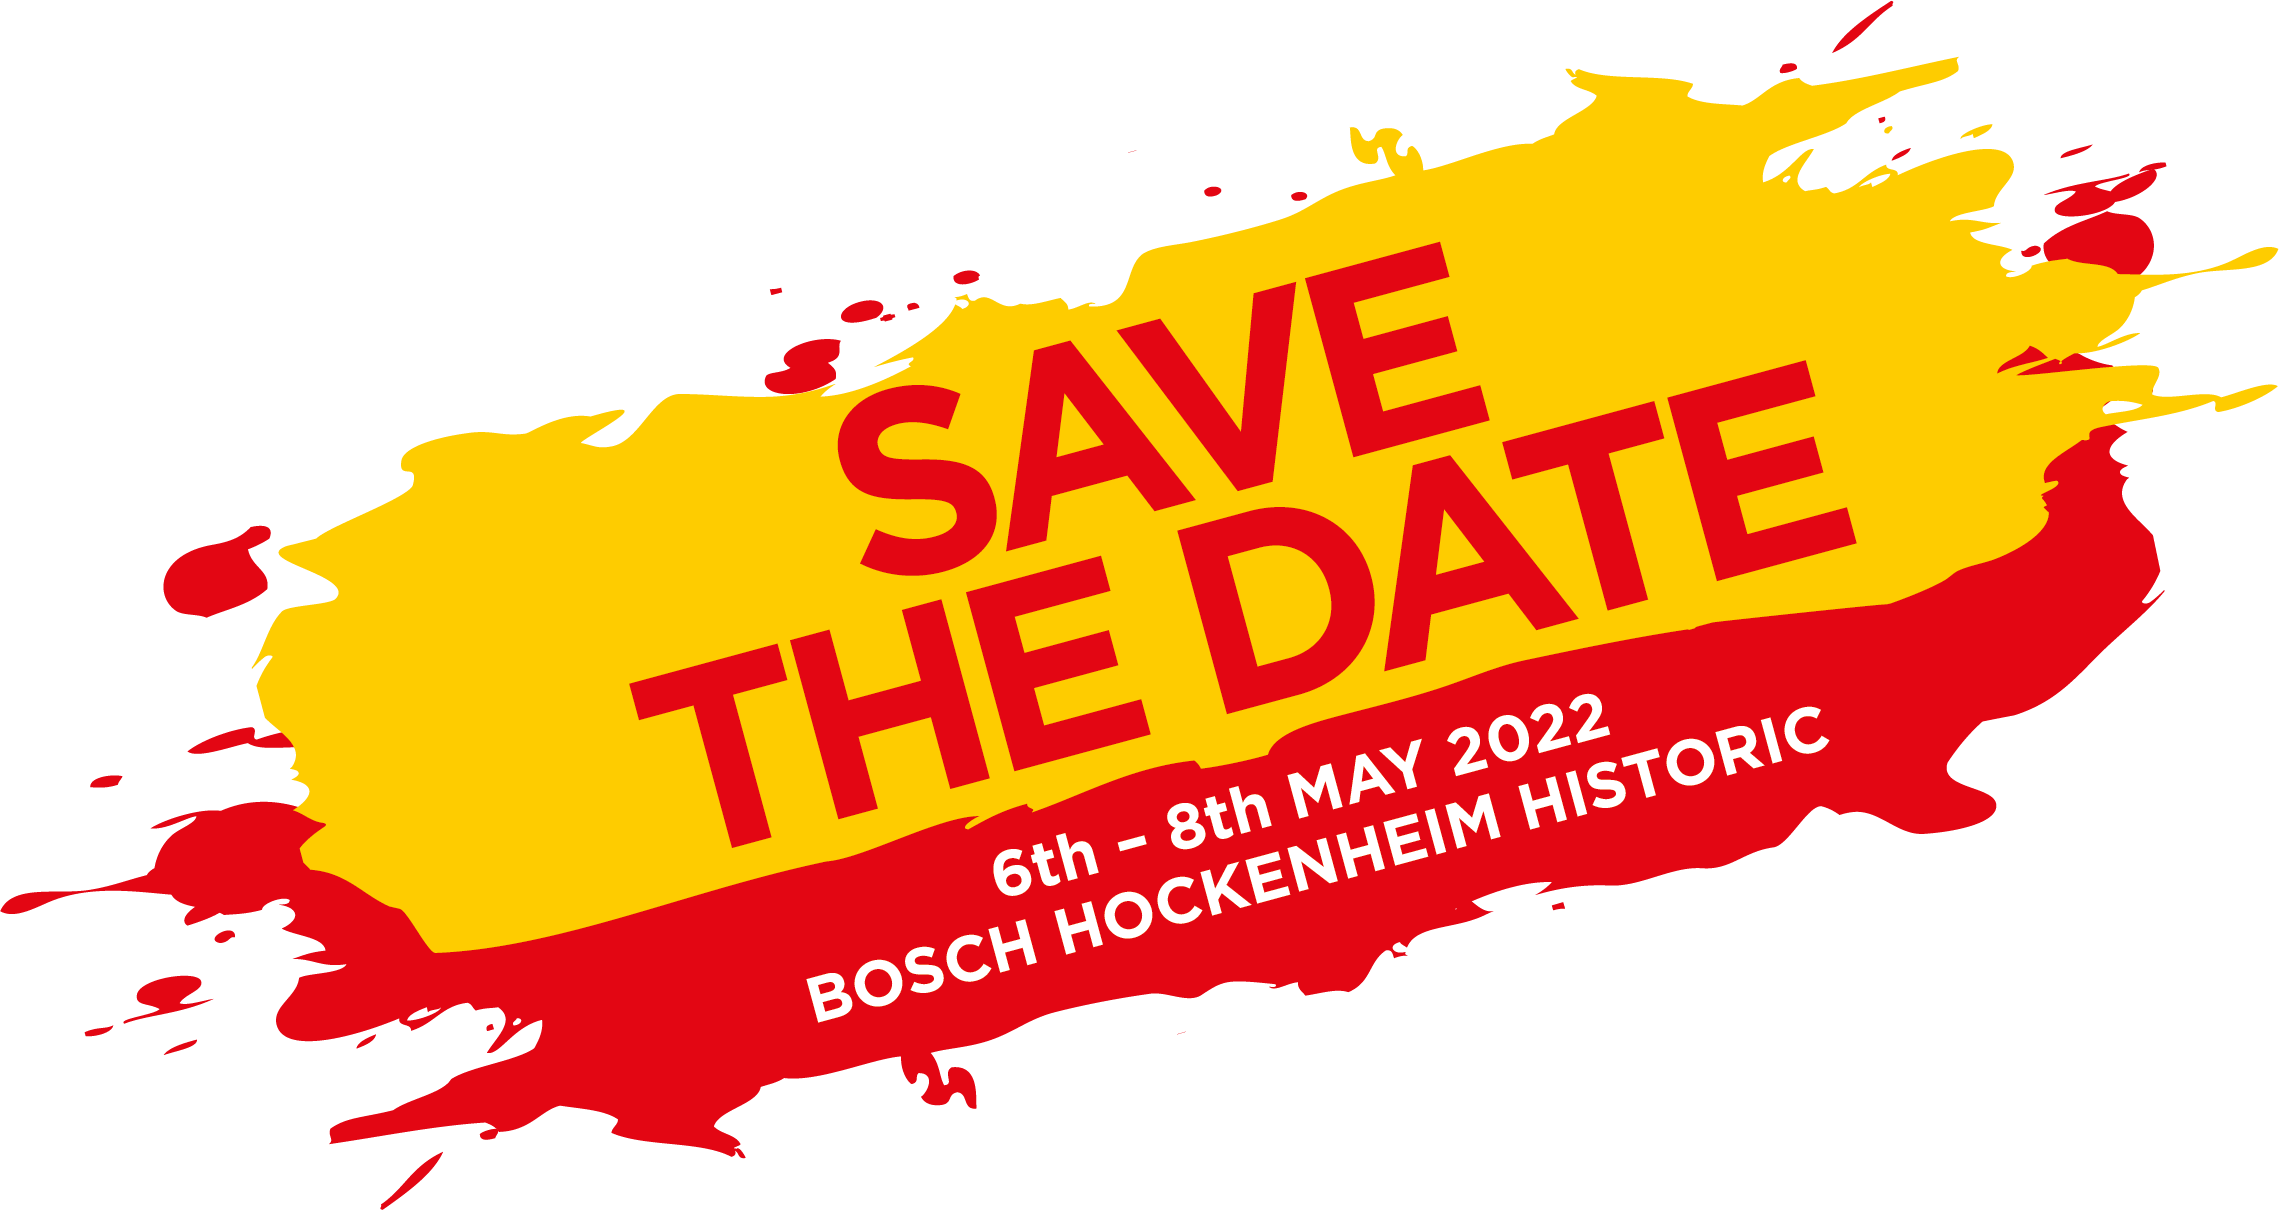 SAVE_THE_DATE_6_8_2022